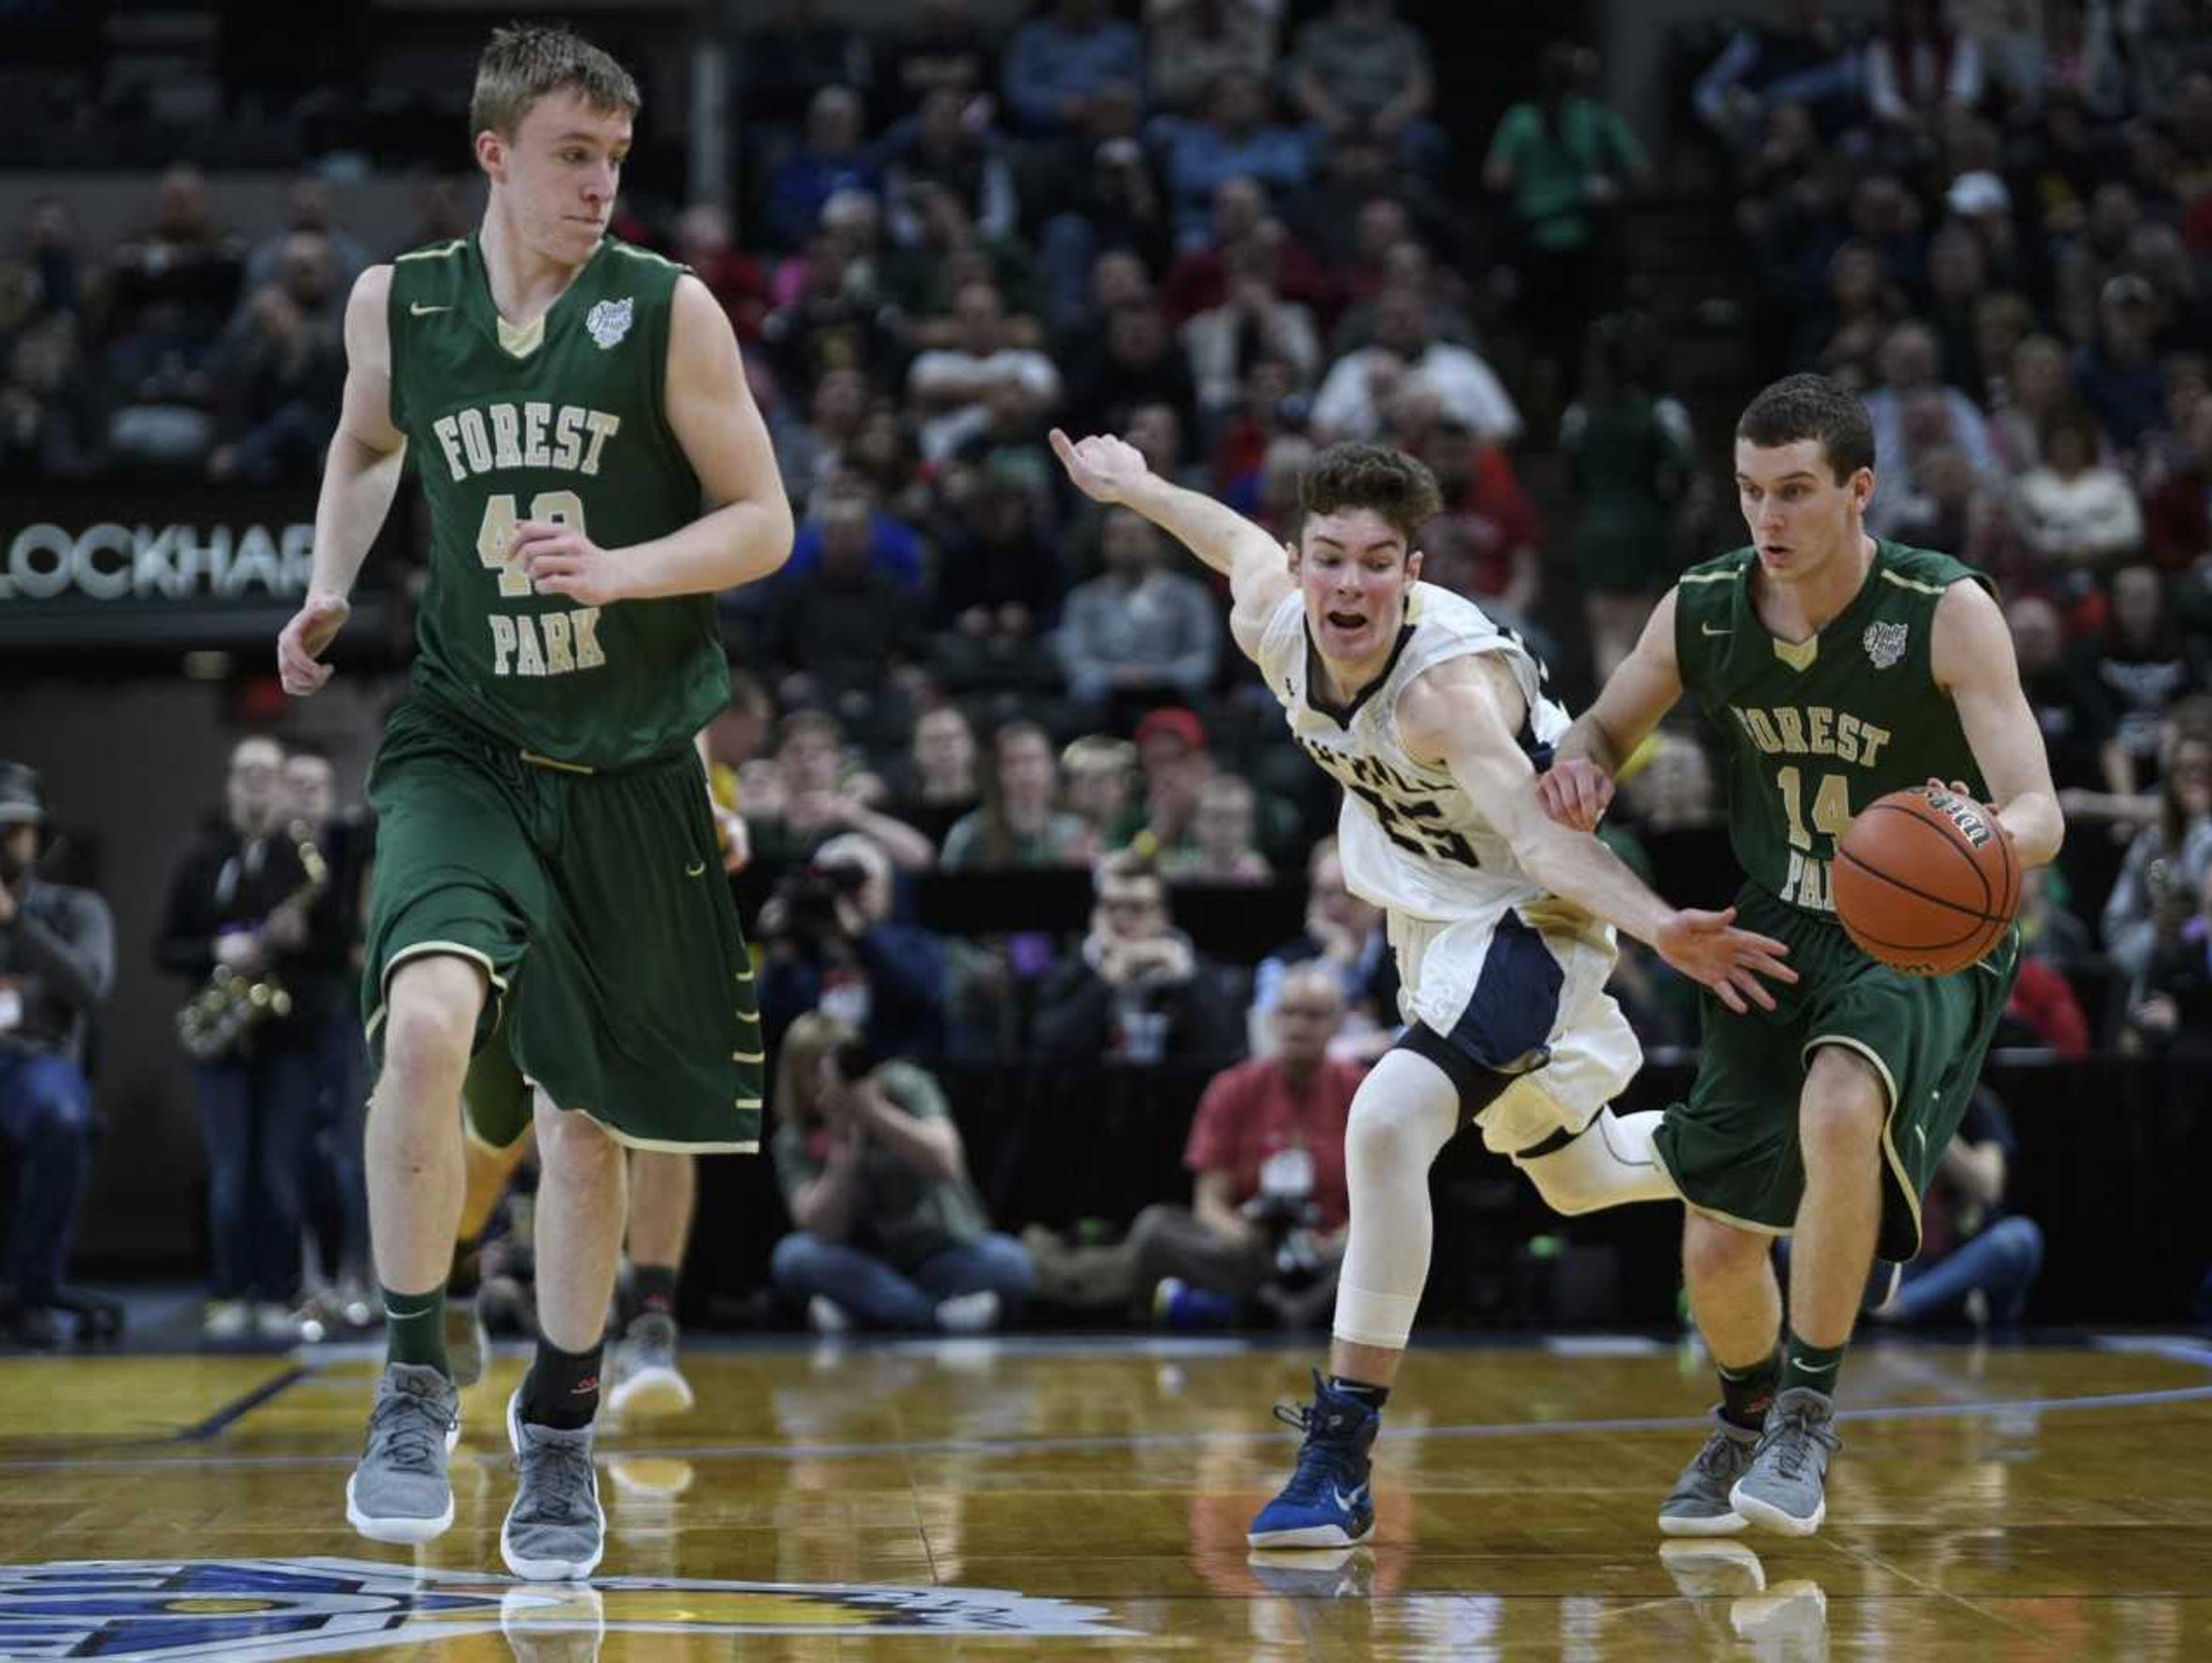 Forest Park' Daniel Lusk takes the ball up the court